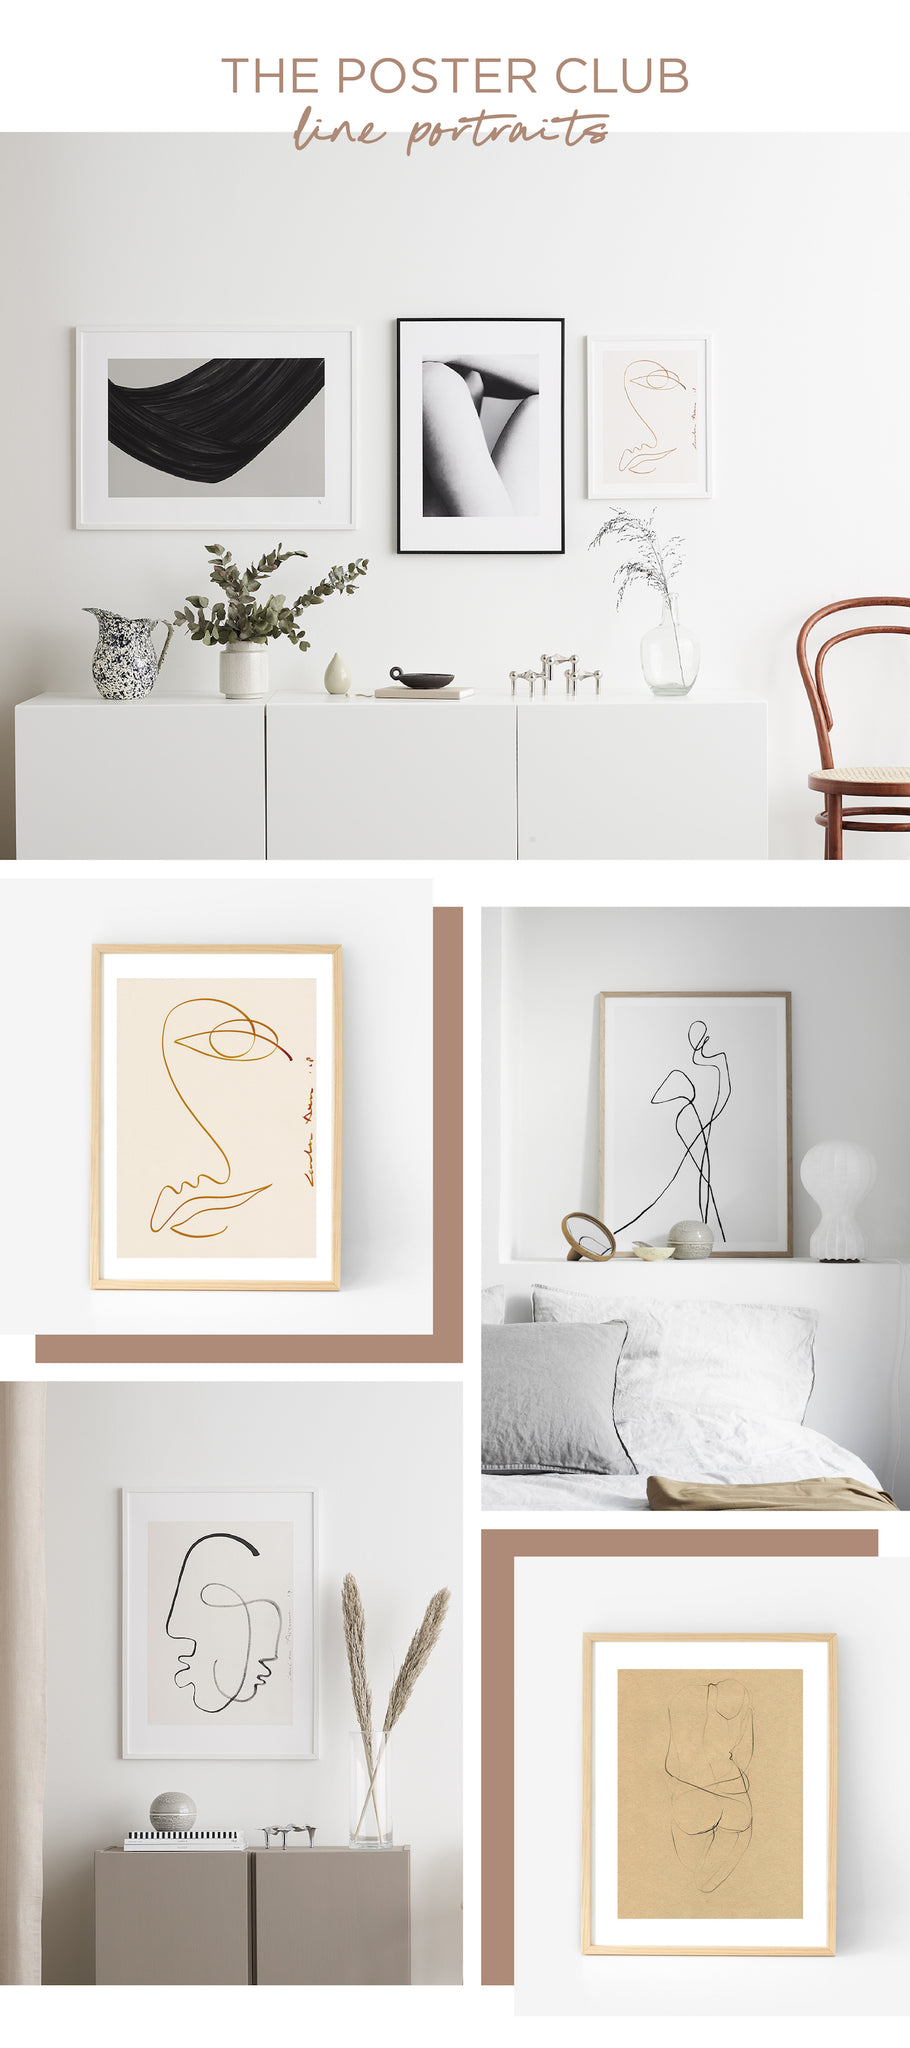 Simple & Natural - The Poster Club - Line Portraits